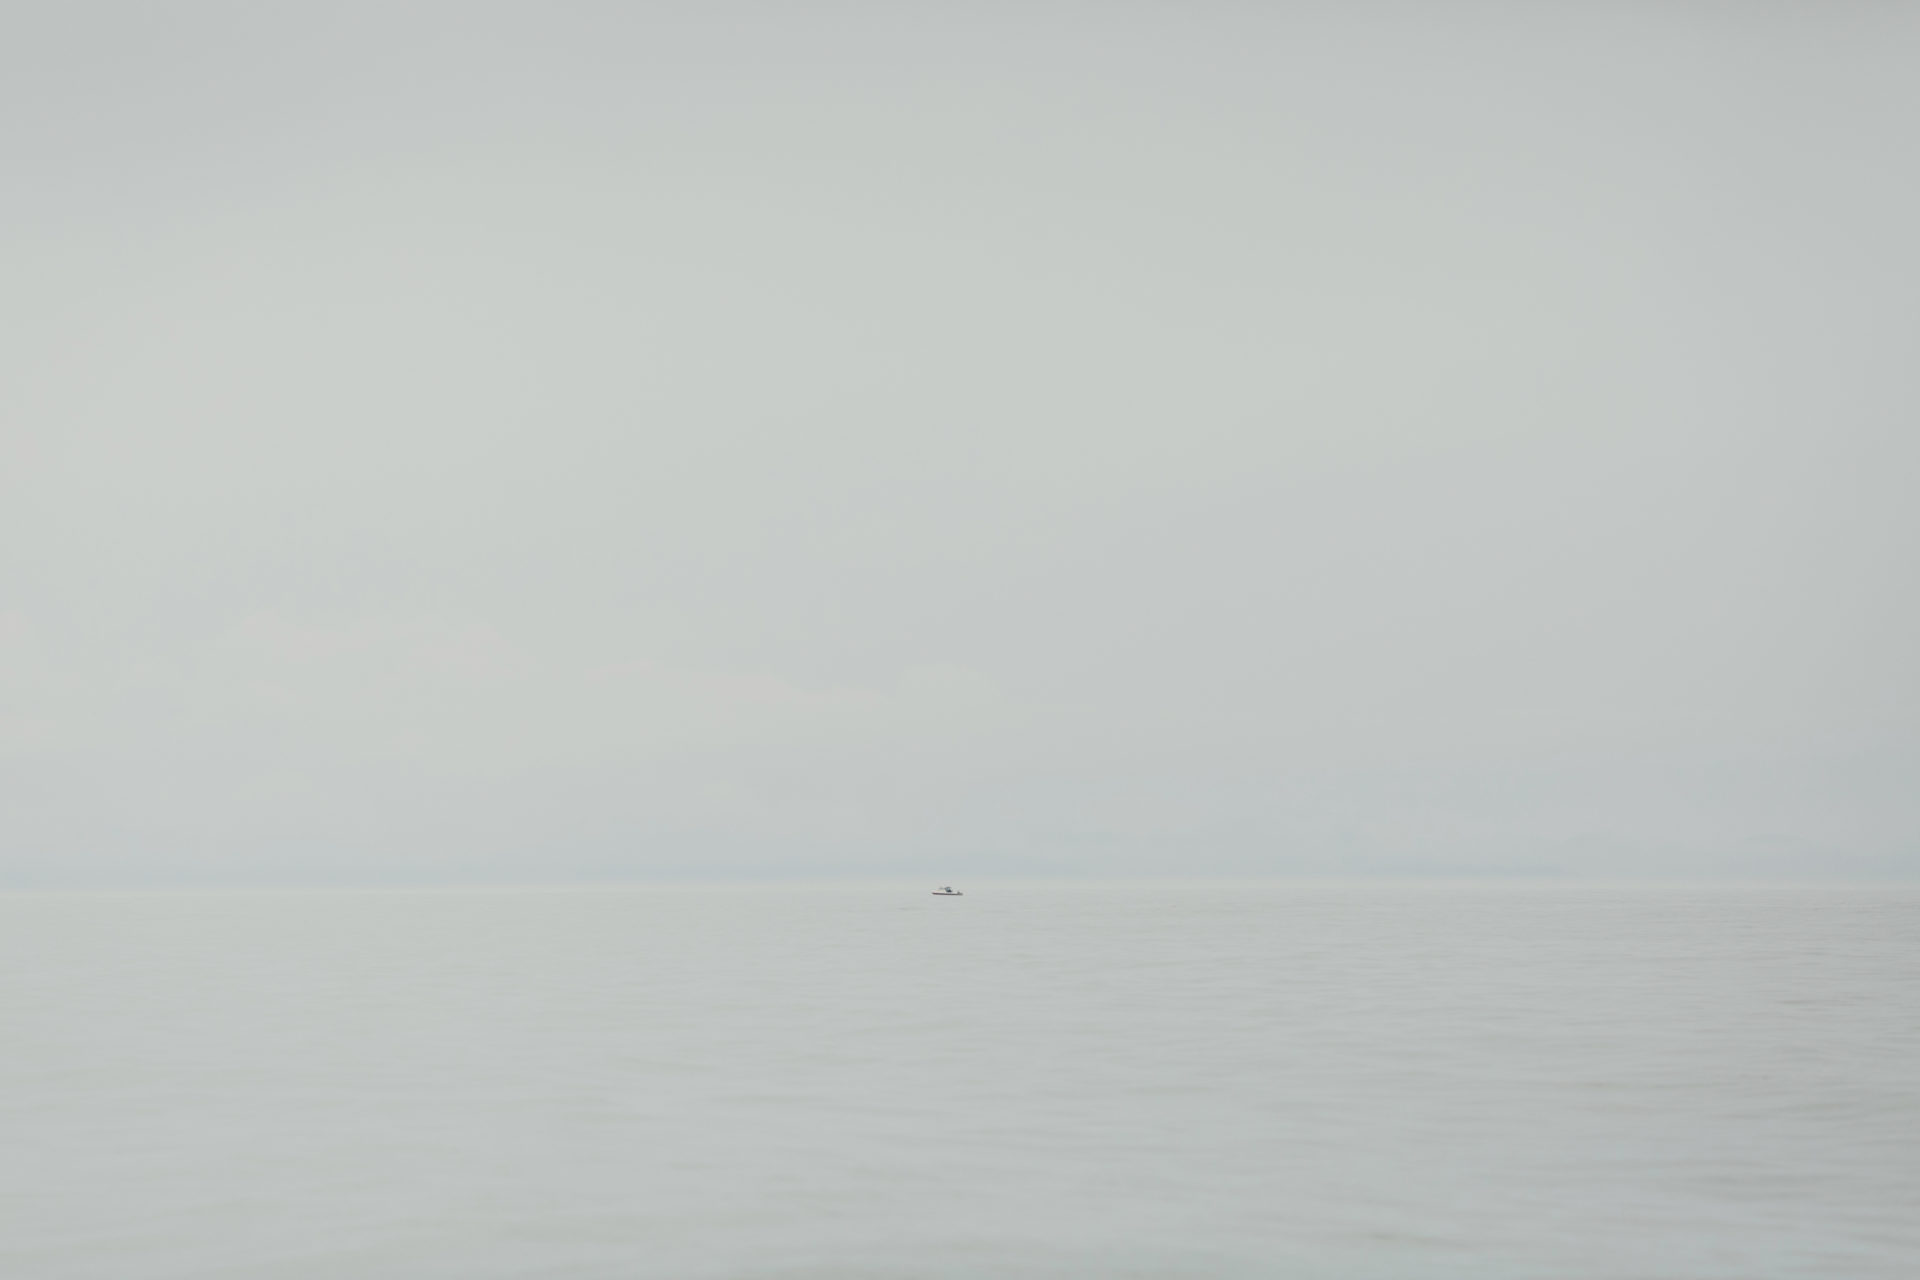 Lone fishing boat